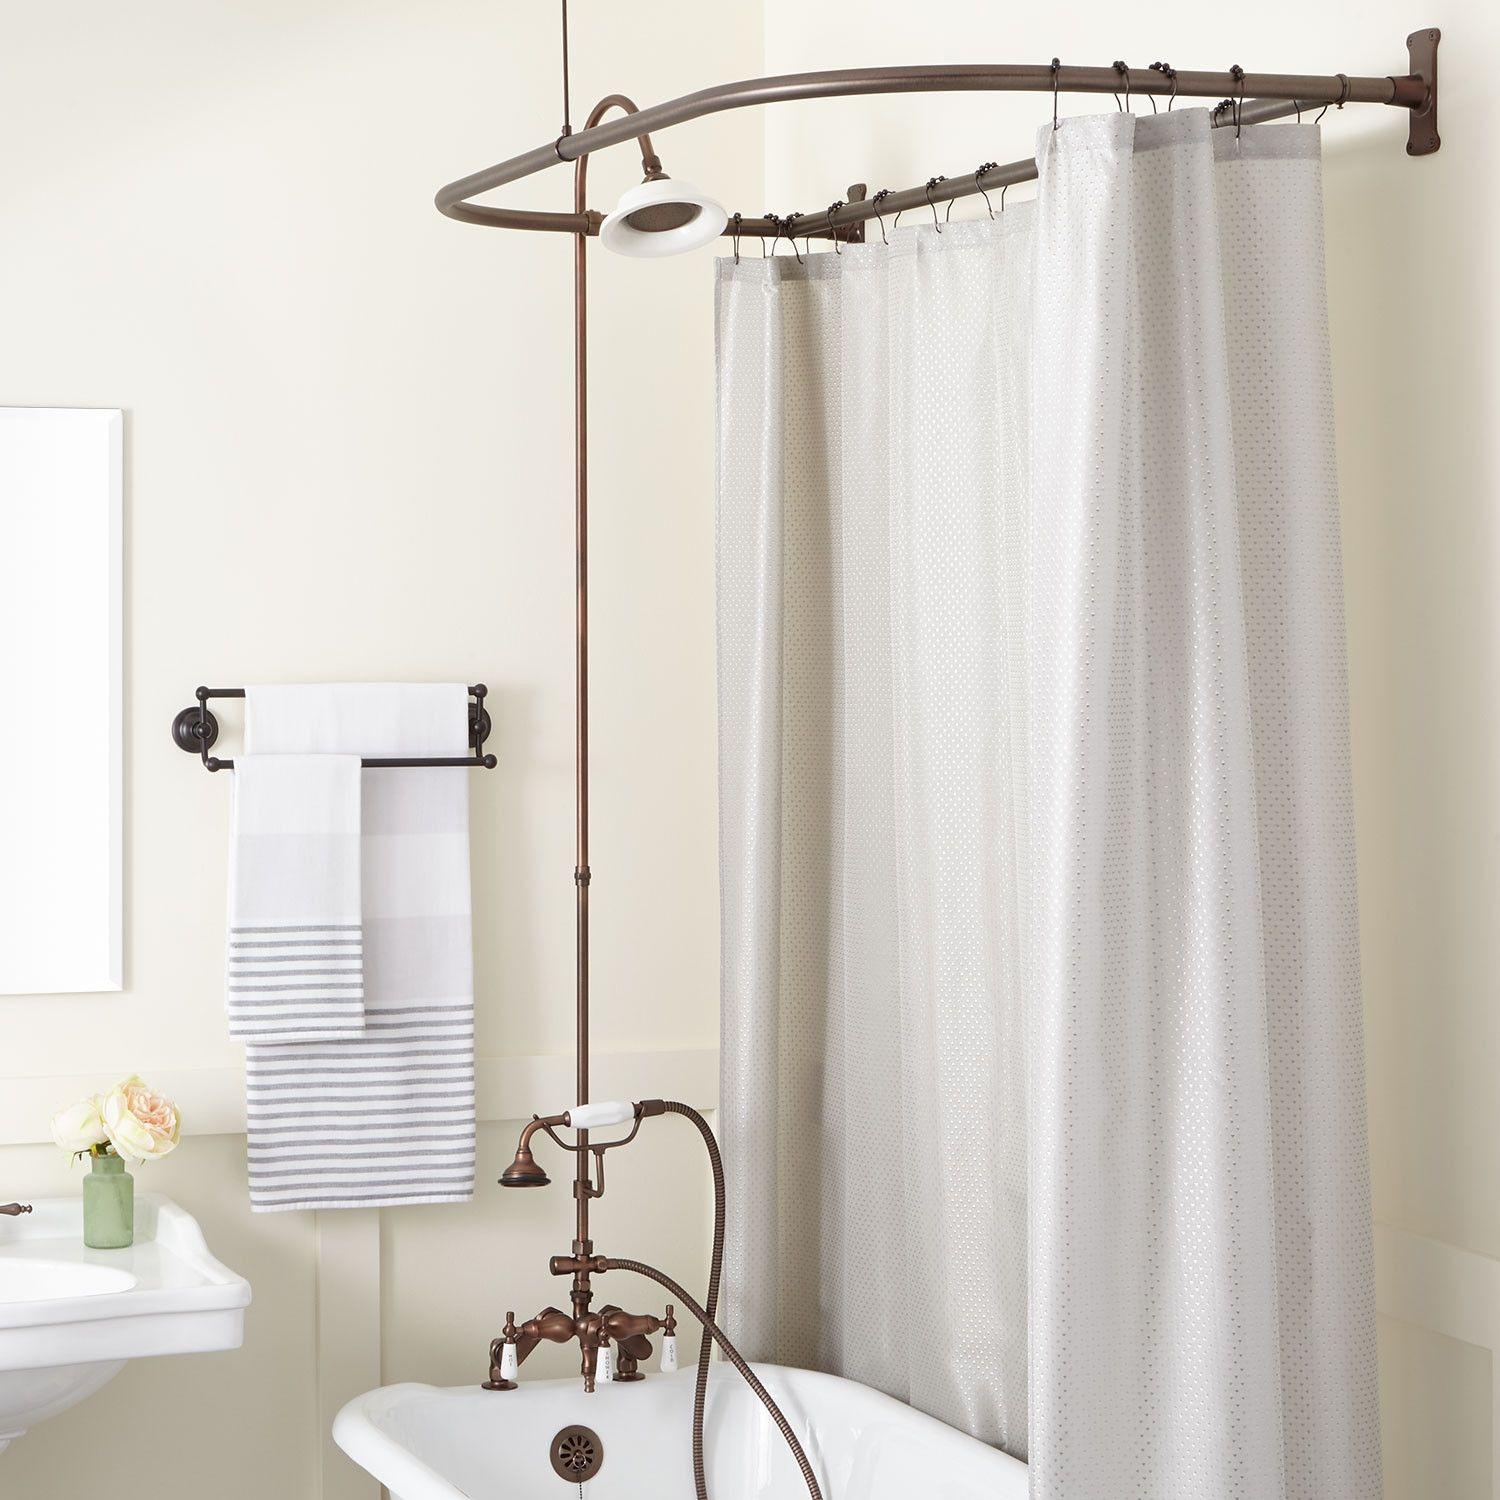 Rim Mount Clawfoot Tub Hand Shower Kit Swing Arms D Style Shower Ring Clawfoot Tub Tub To Shower Conversion Shower Conversion Clawfoot Tub Shower Curtain